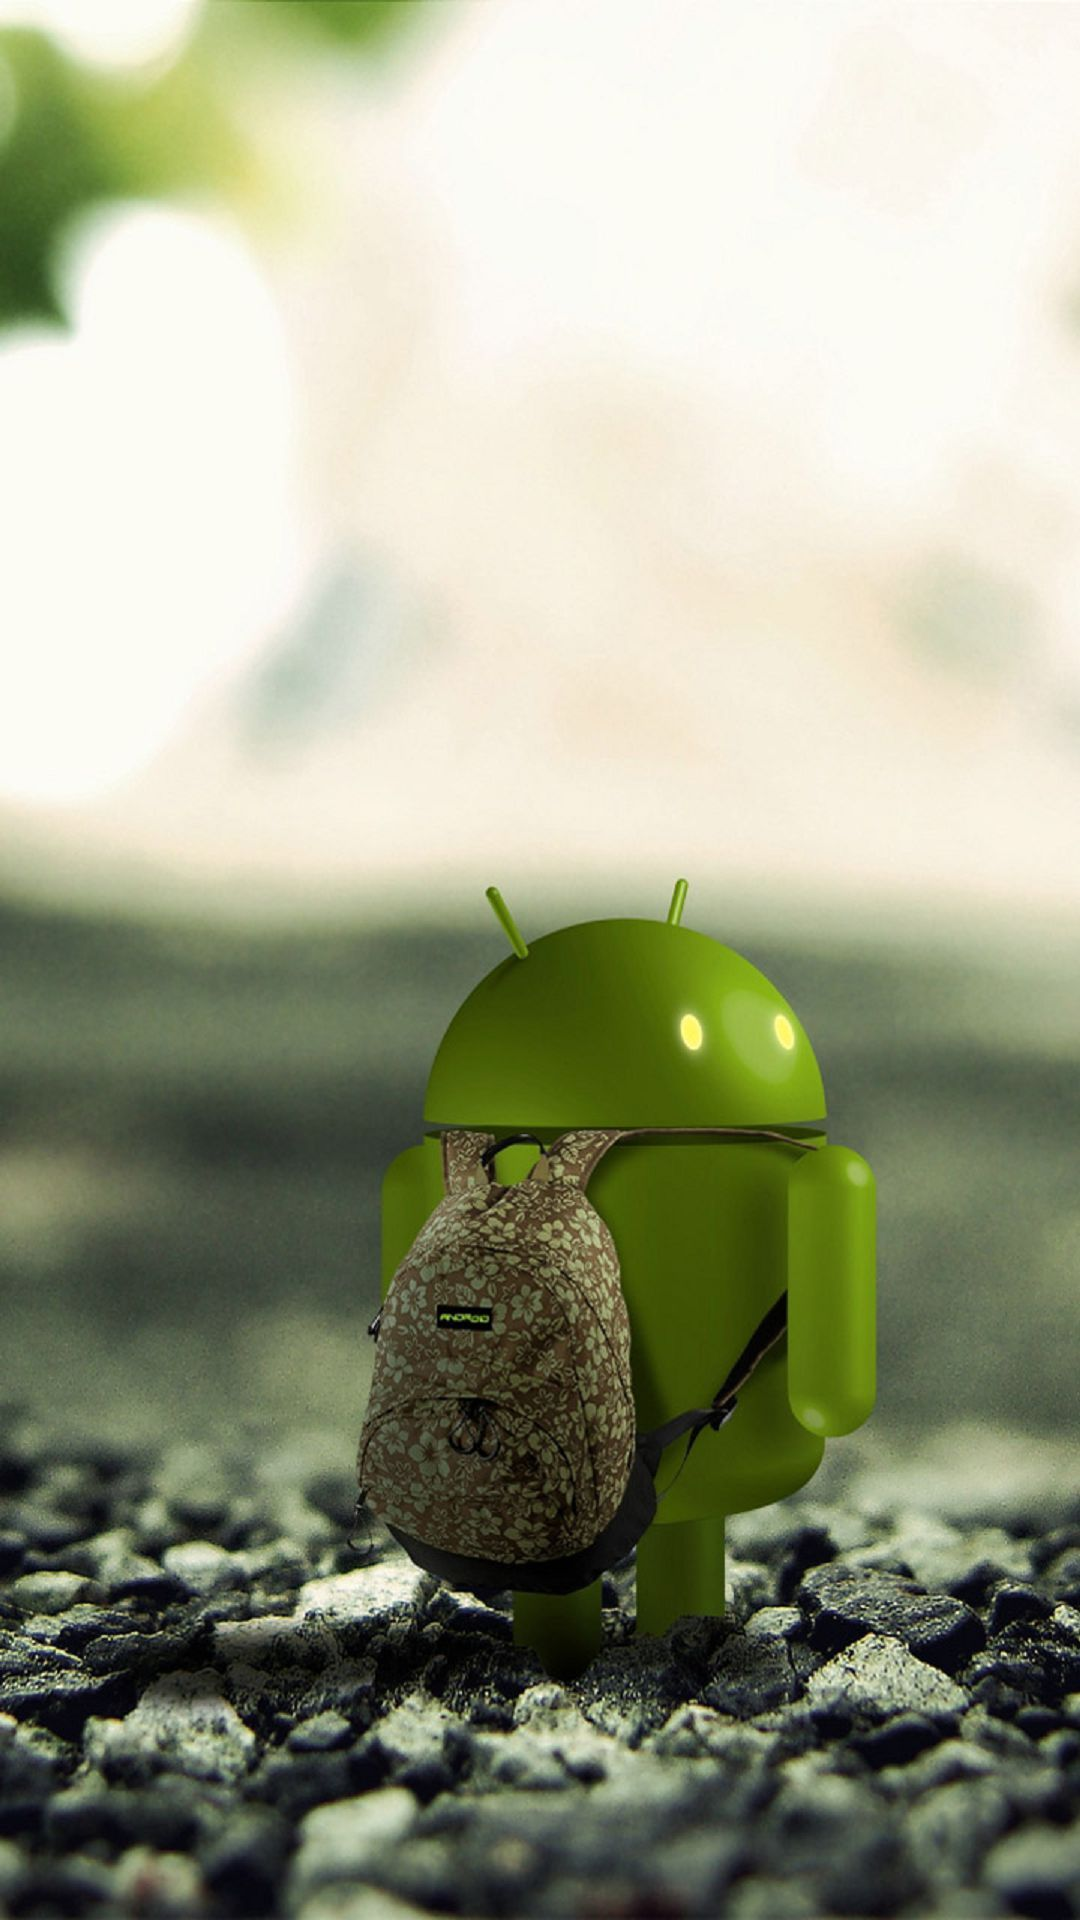 Android Robot Backpack Android Wallpaper Collections Robot Wallpaper Mobile Wallpaper Android Samsung Galaxy Wallpaper